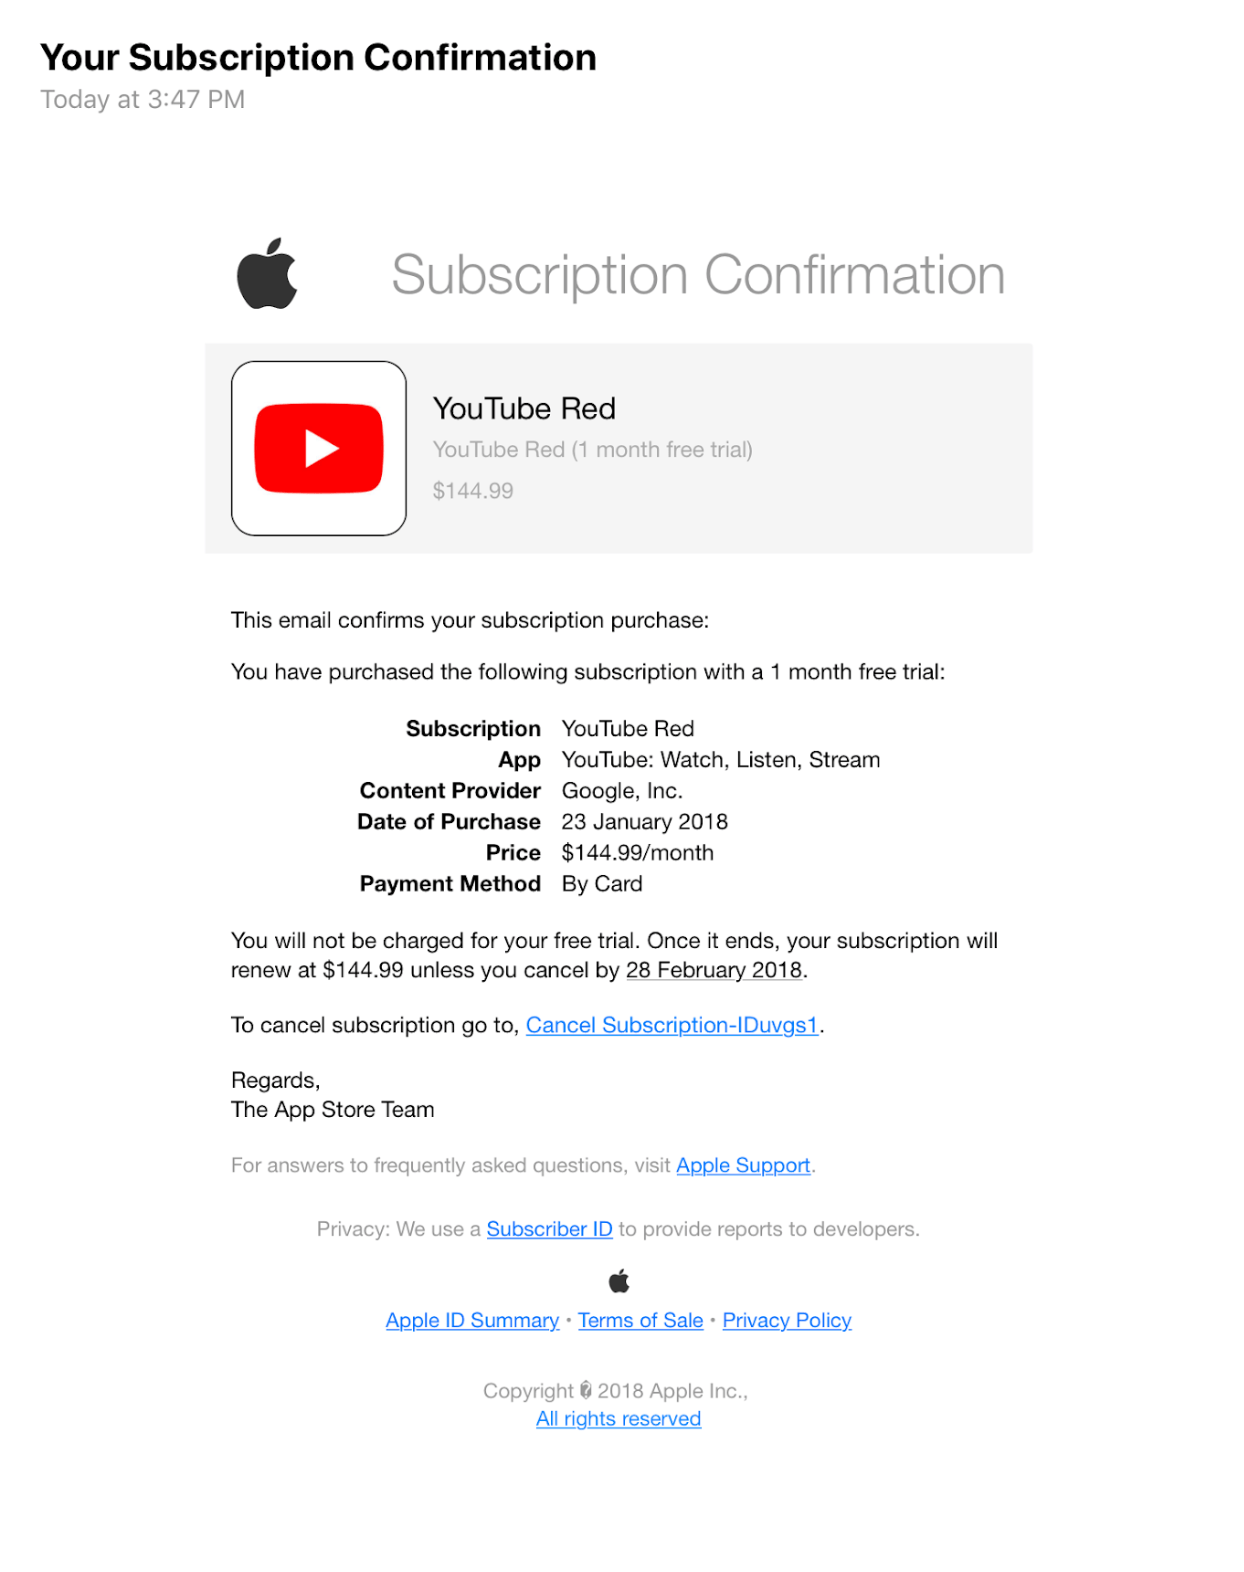 In terms of usage, it's an identical replacement for a regular credit card, which can be very. Psa Watch Out For These Convincing App Store Subscription Phishing Emails 9to5mac